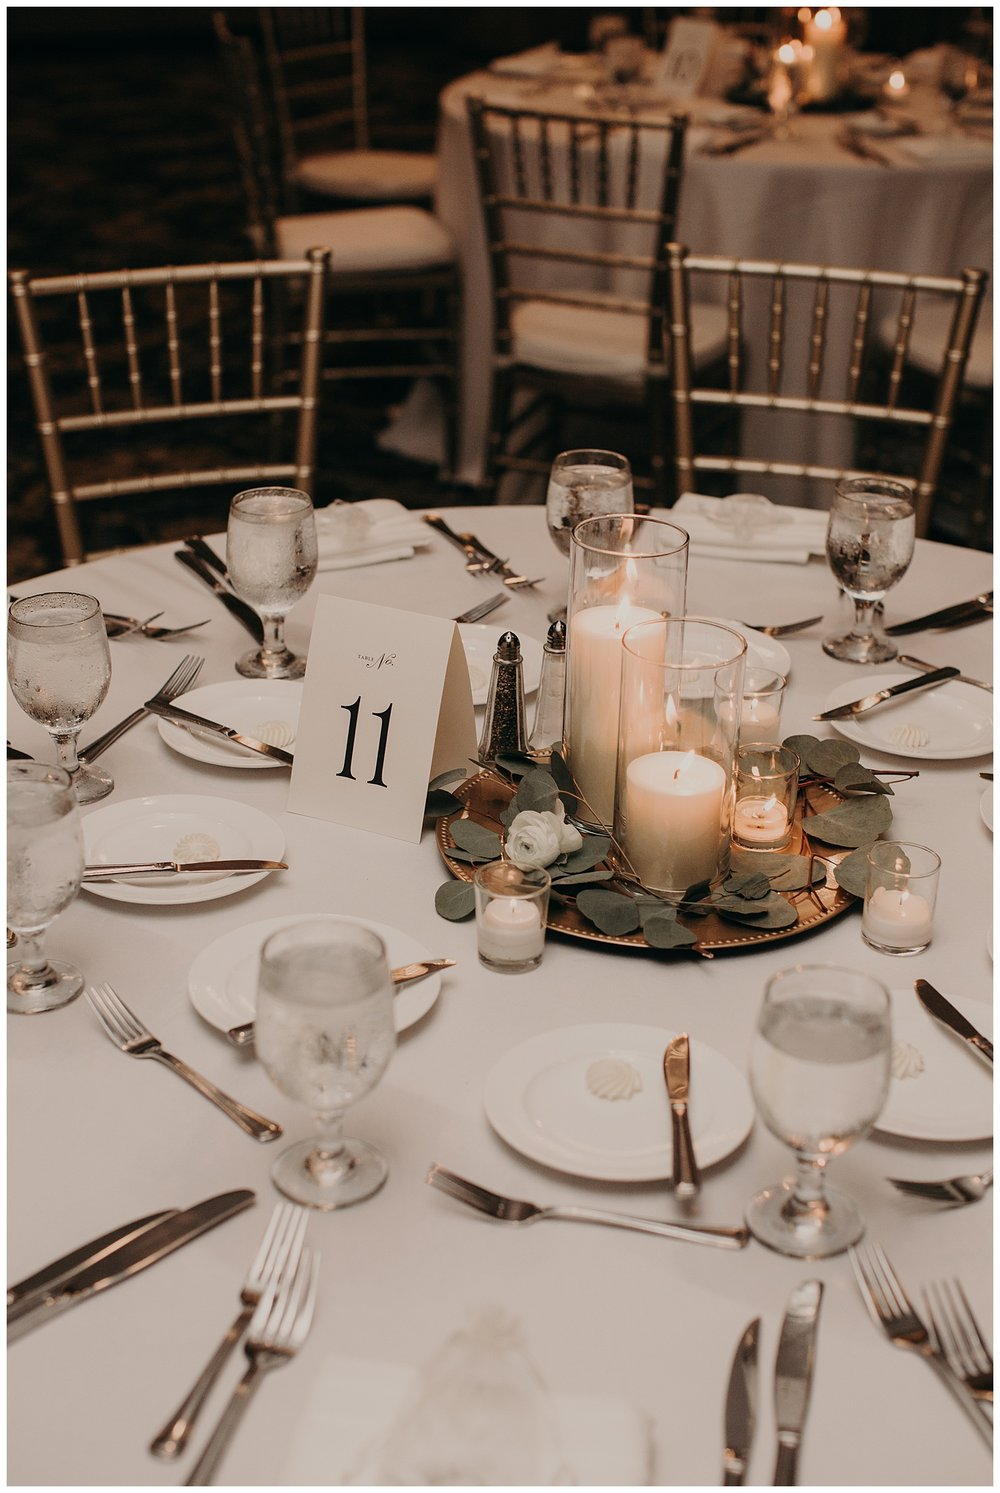 Mike_Kelly_Hotel_Viking_Newport_Rhode_Island_Wedding_026.jpeg